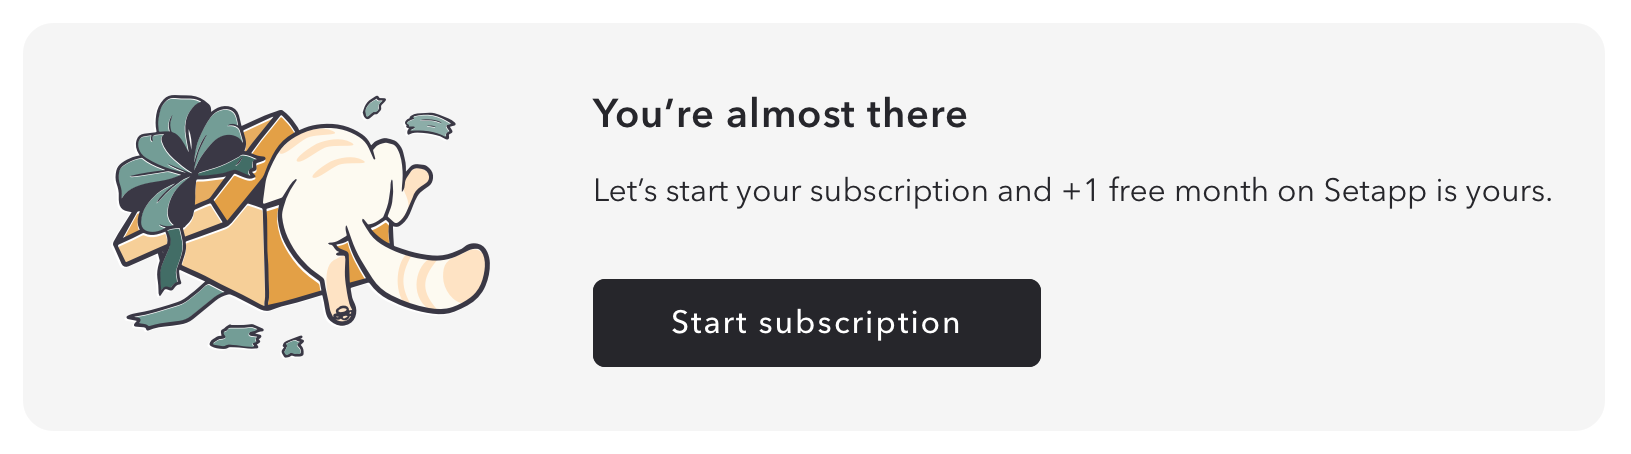 referral-reminder-banner-subscription-page.png